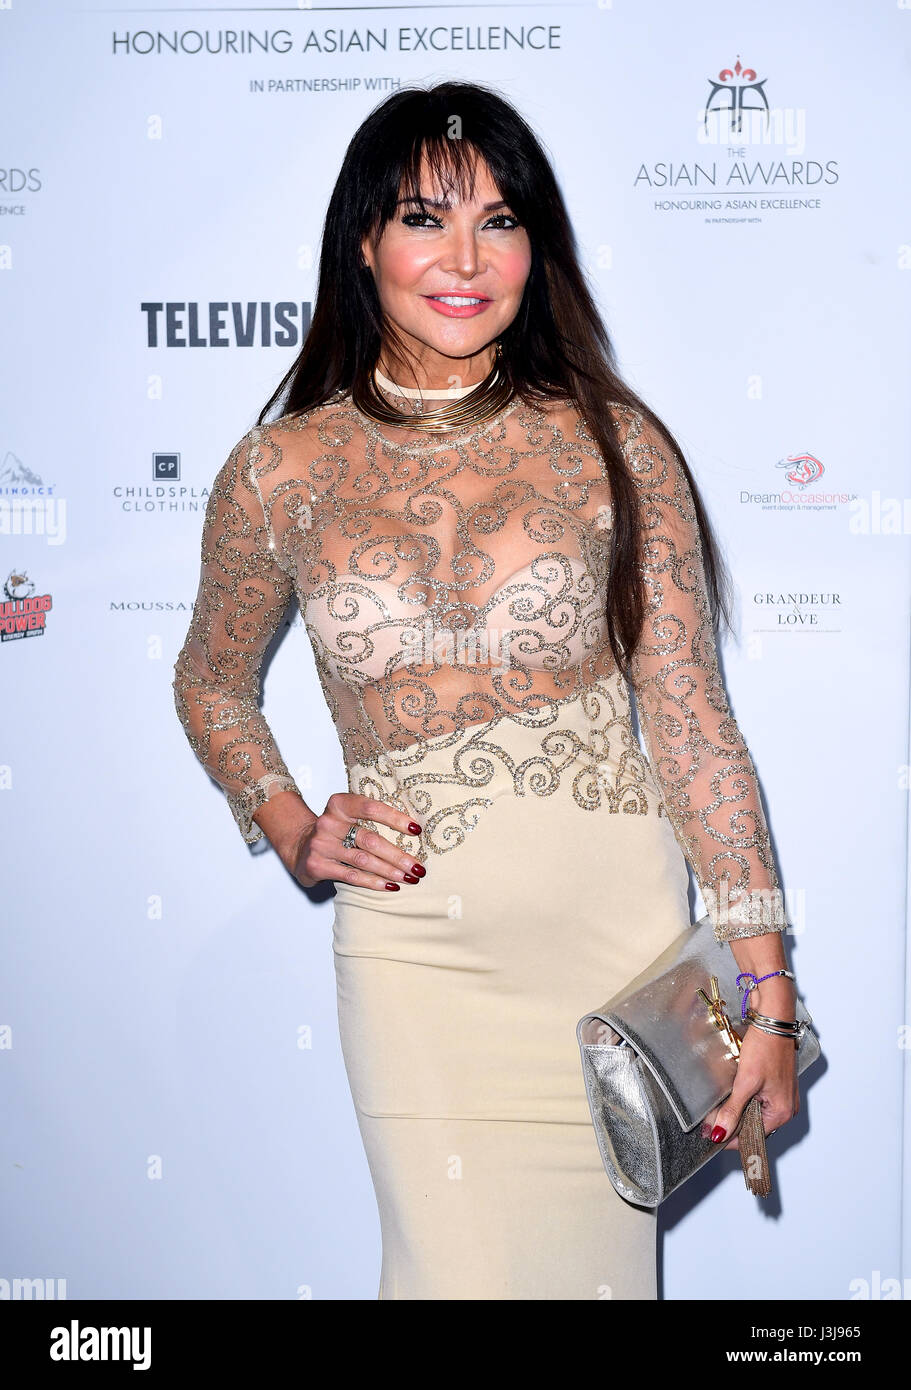 Watch Lizzie cundy see through 2 video